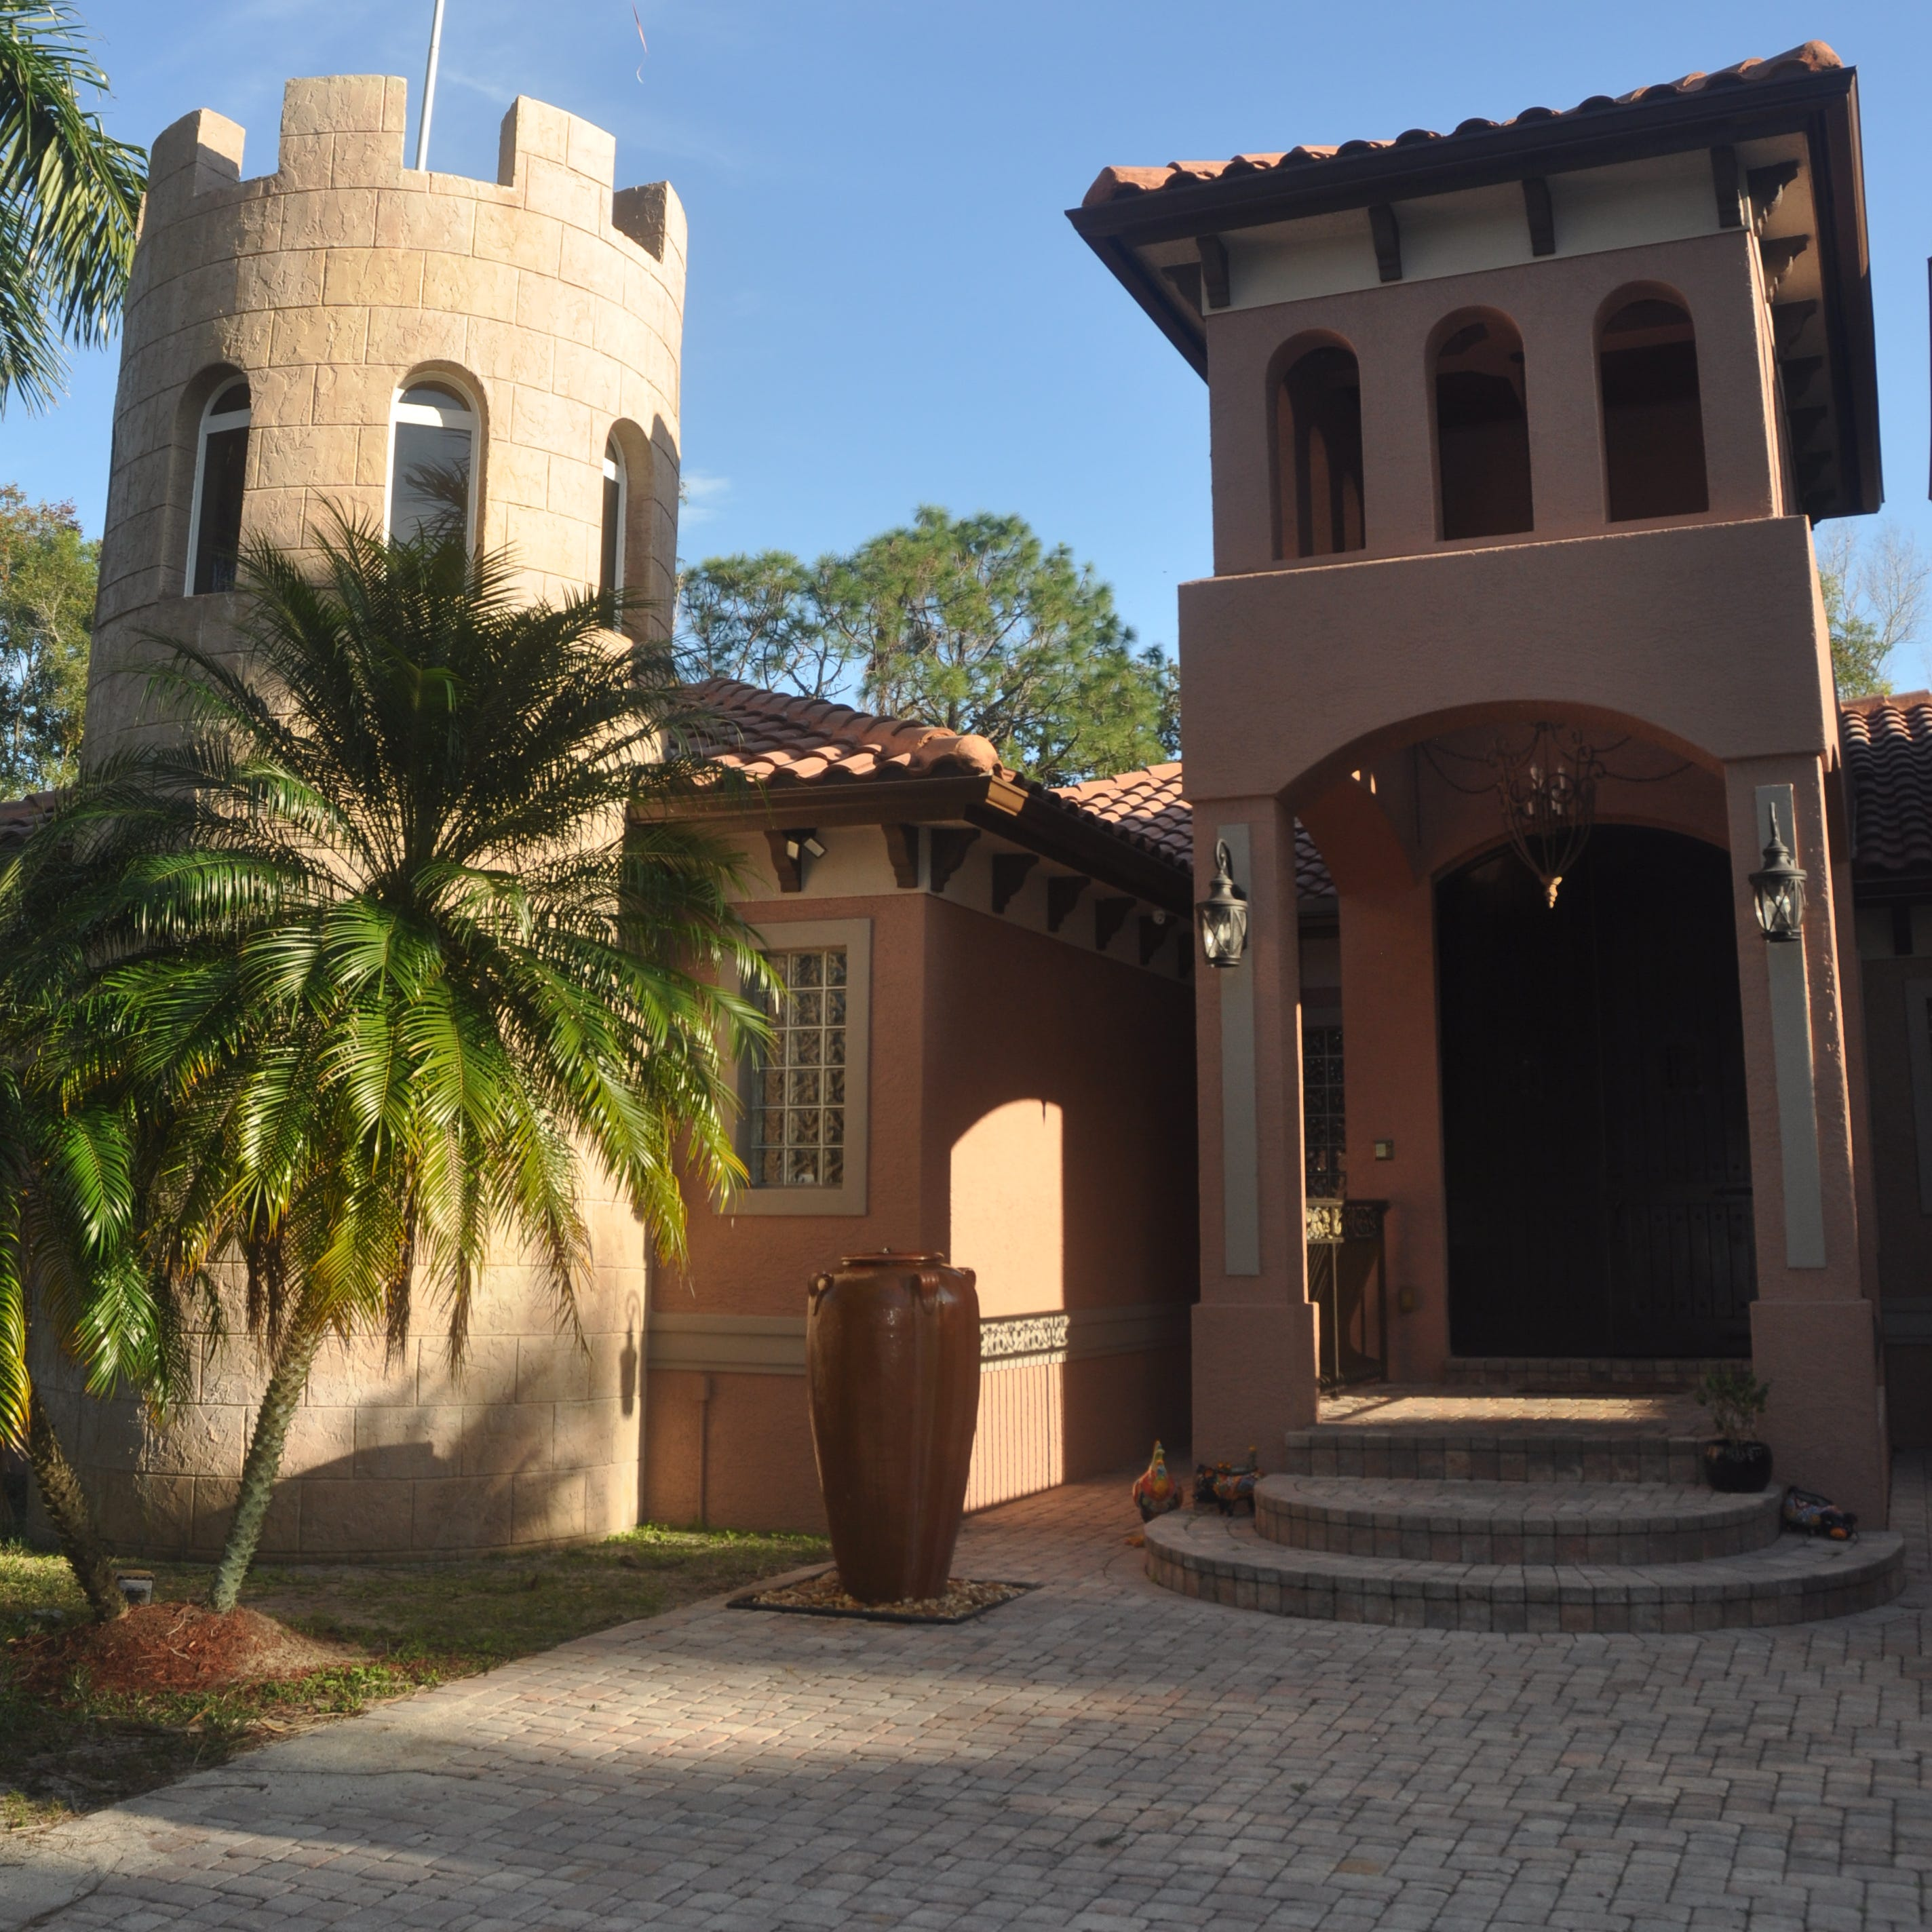 North Fort Myers 'castle' combines old world charm with modern conveniences